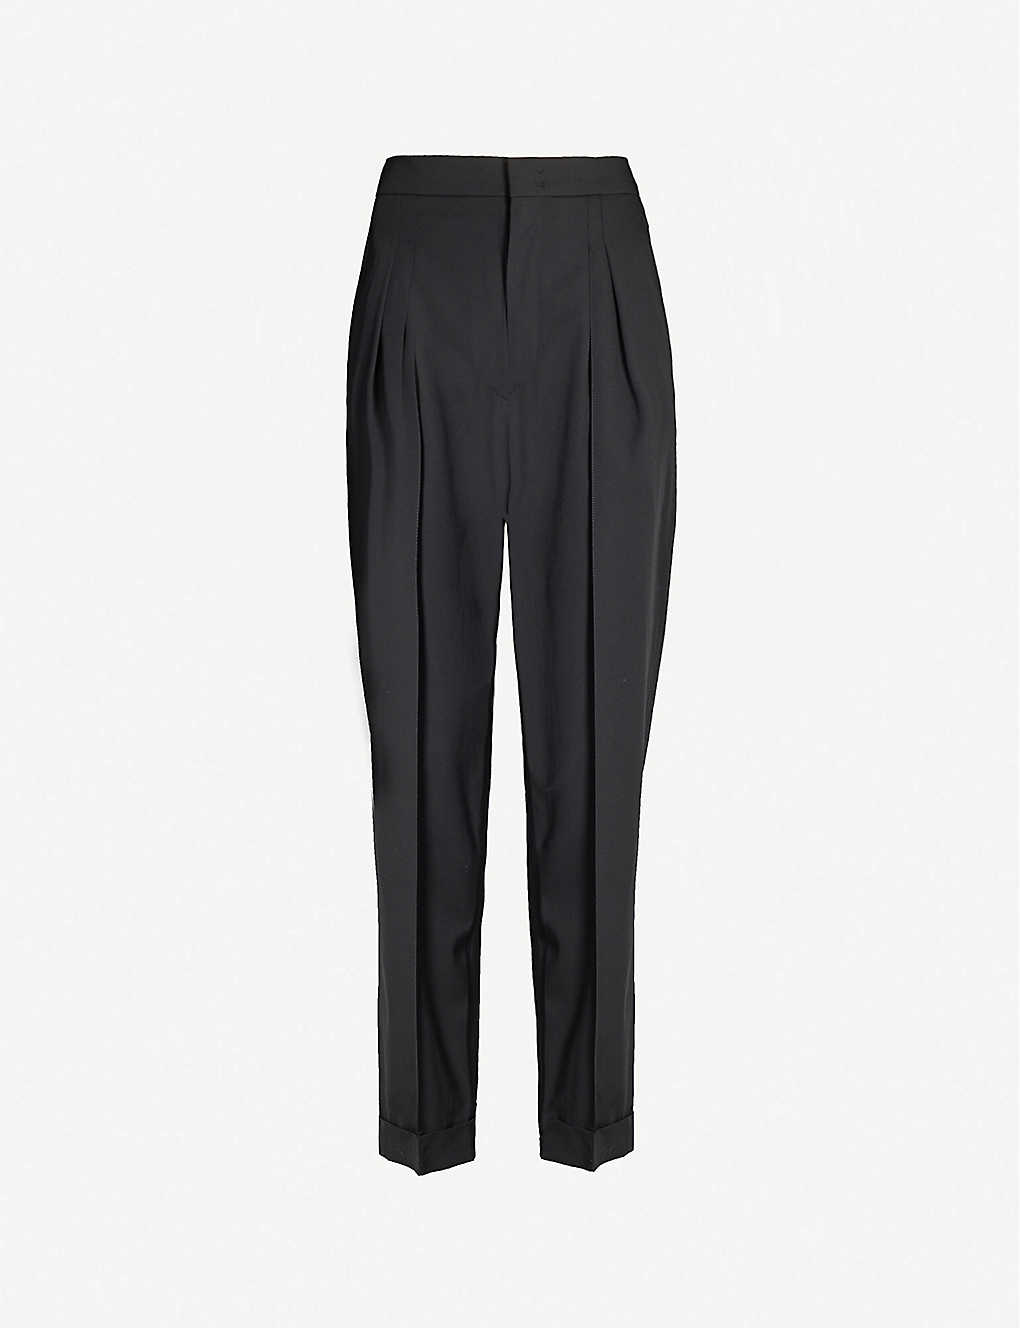 Isabel Marant Pants Pelisso tapered wool trousers